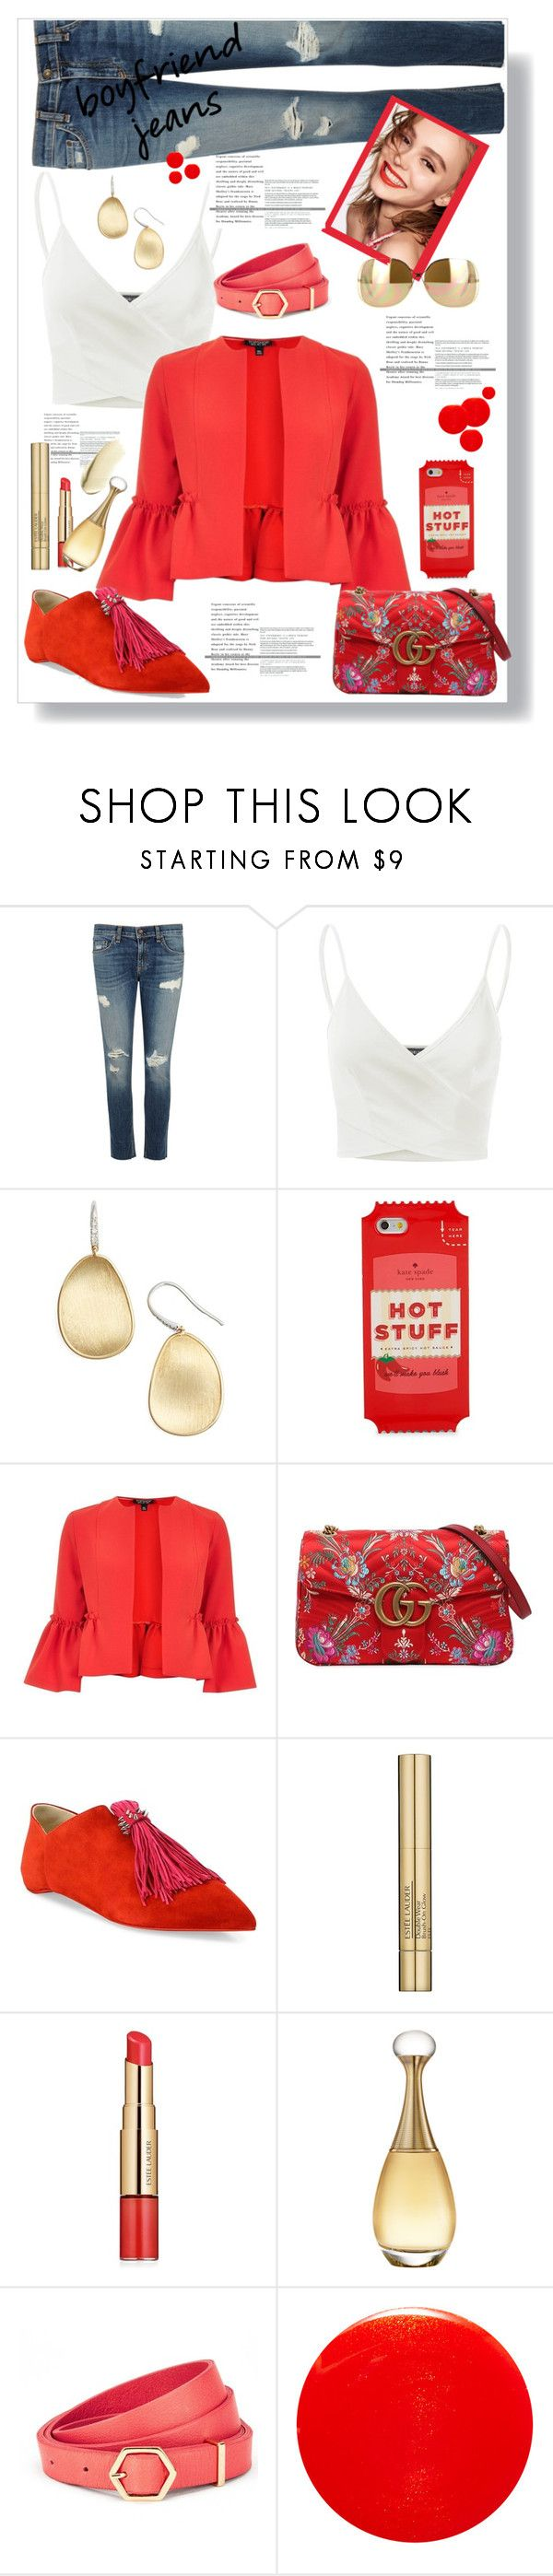 """""""boyfriend jeans"""" by valerie-42 ❤ liked on Polyvore featuring rag & bone/JEAN, Doublju, Marco Bicego, Kate Spade, Topshop, Naomi Campbell, Gucci, Christian Louboutin, Victoria Beckham and Estée Lauder"""